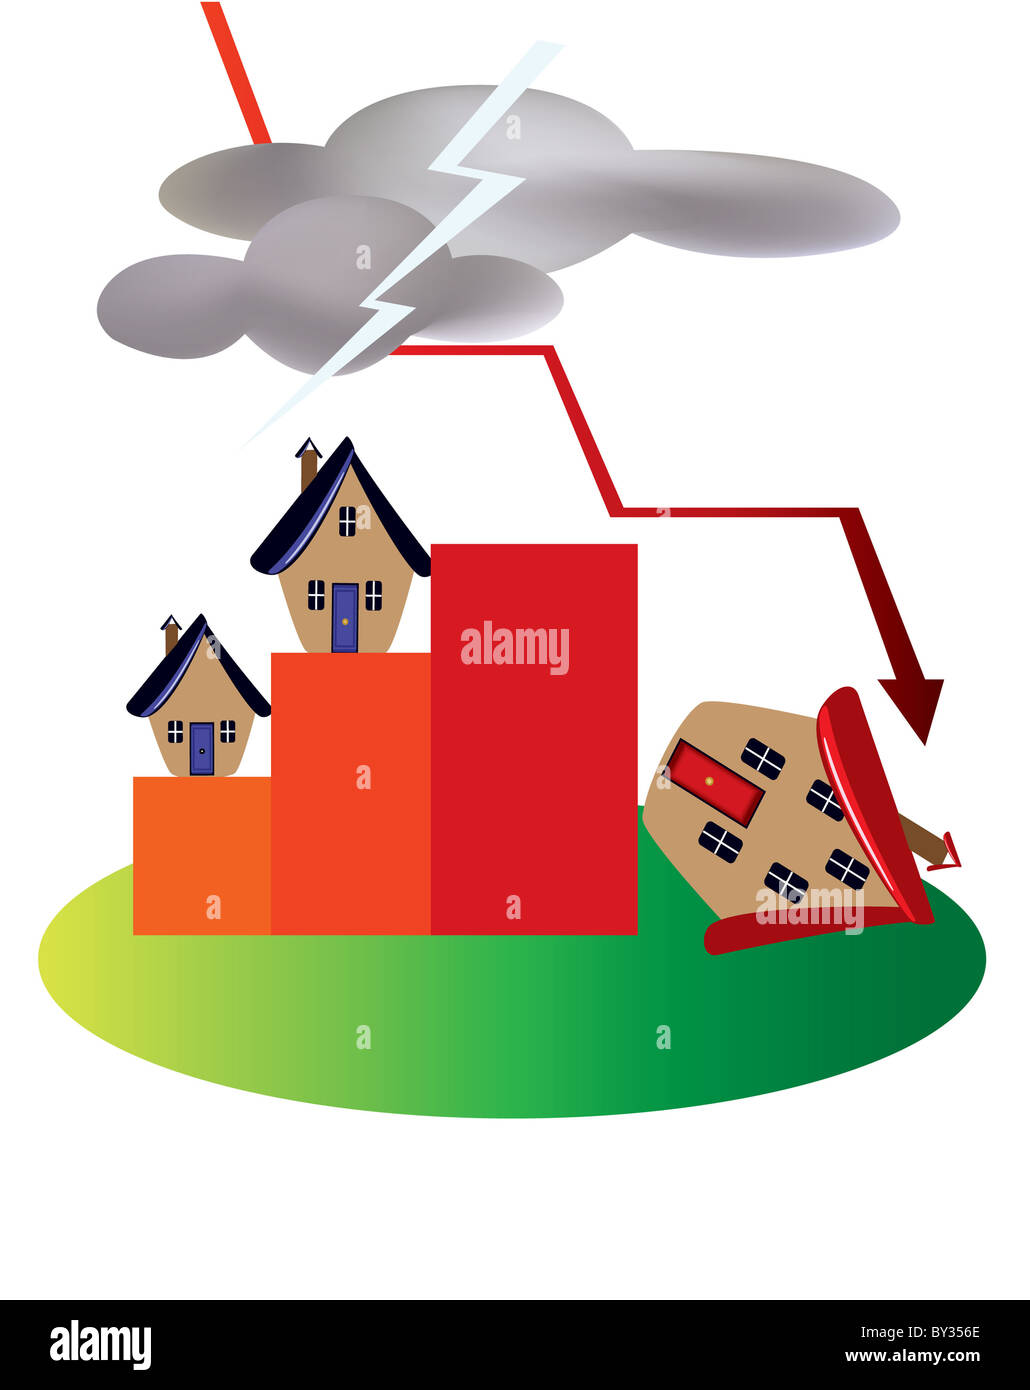 Property market crash - Stock Image